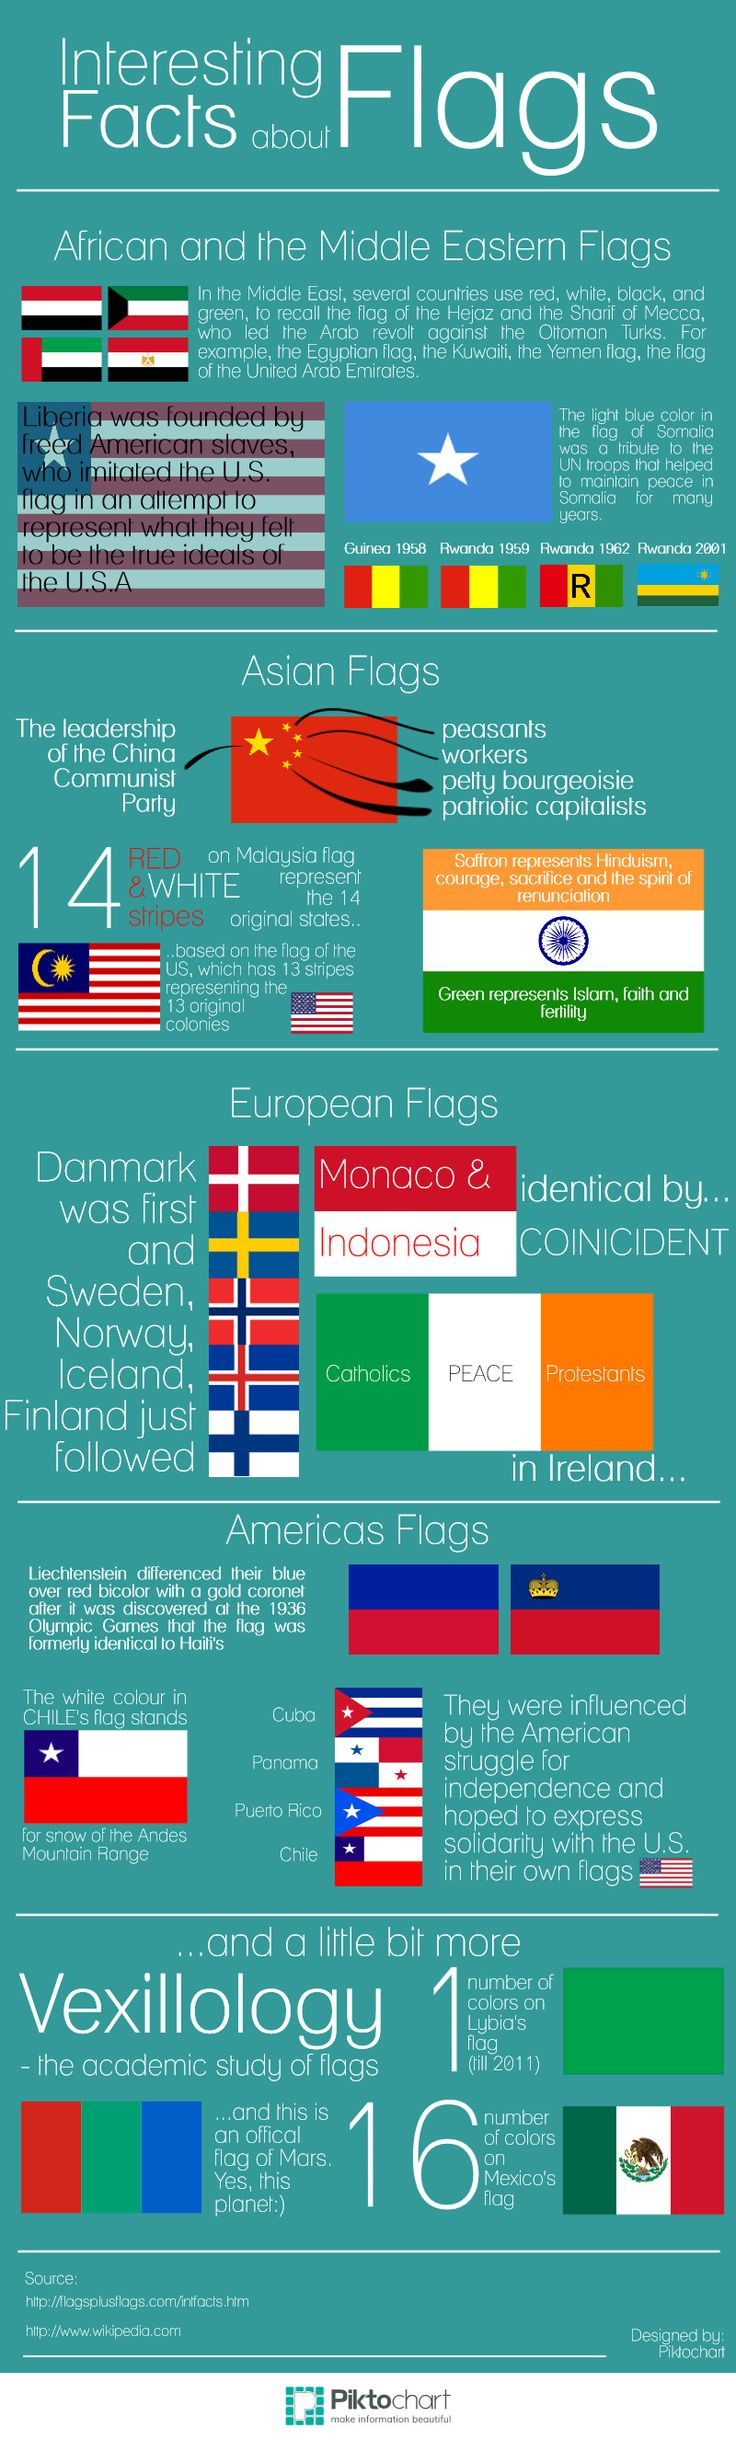 Interesting Facts About Flags Infographic Fun Facts Political Beliefs Infographic